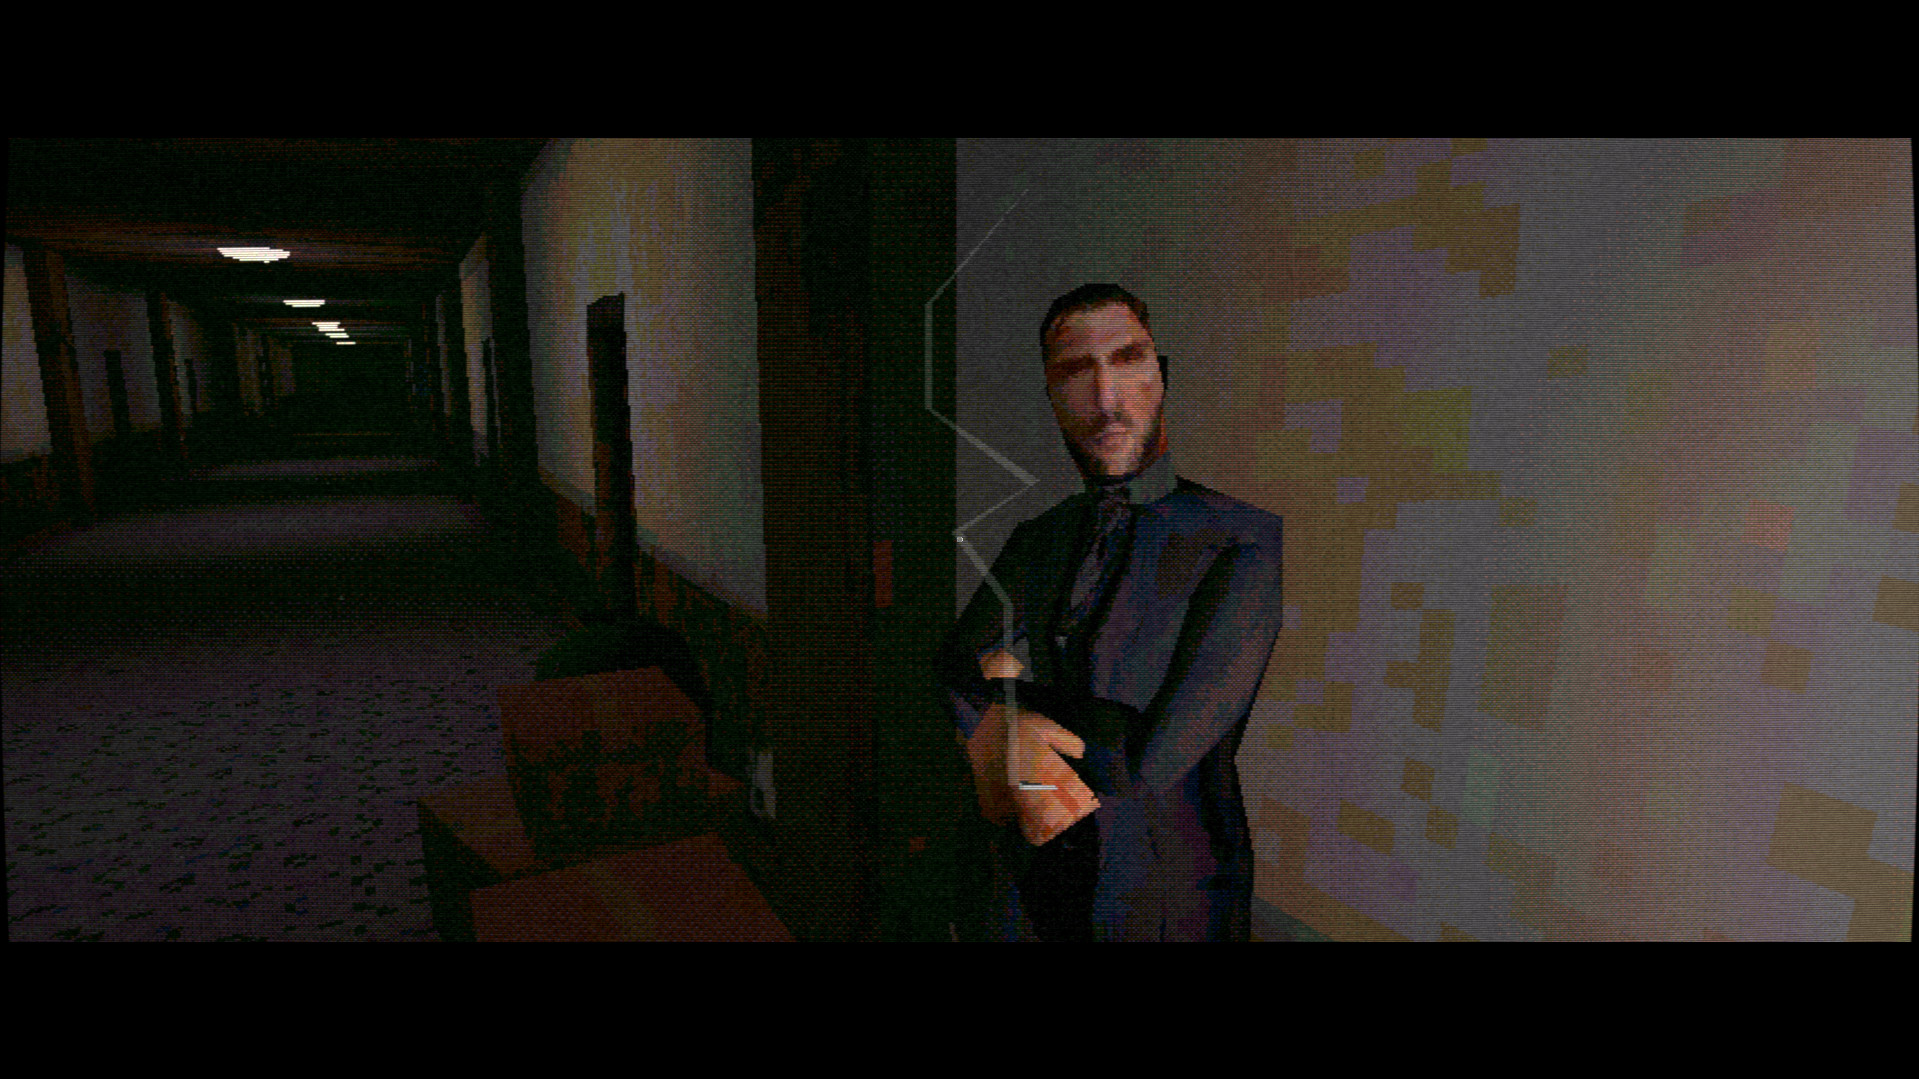 A Nightslink screenshot of a man in a suit smoking in a hallway.